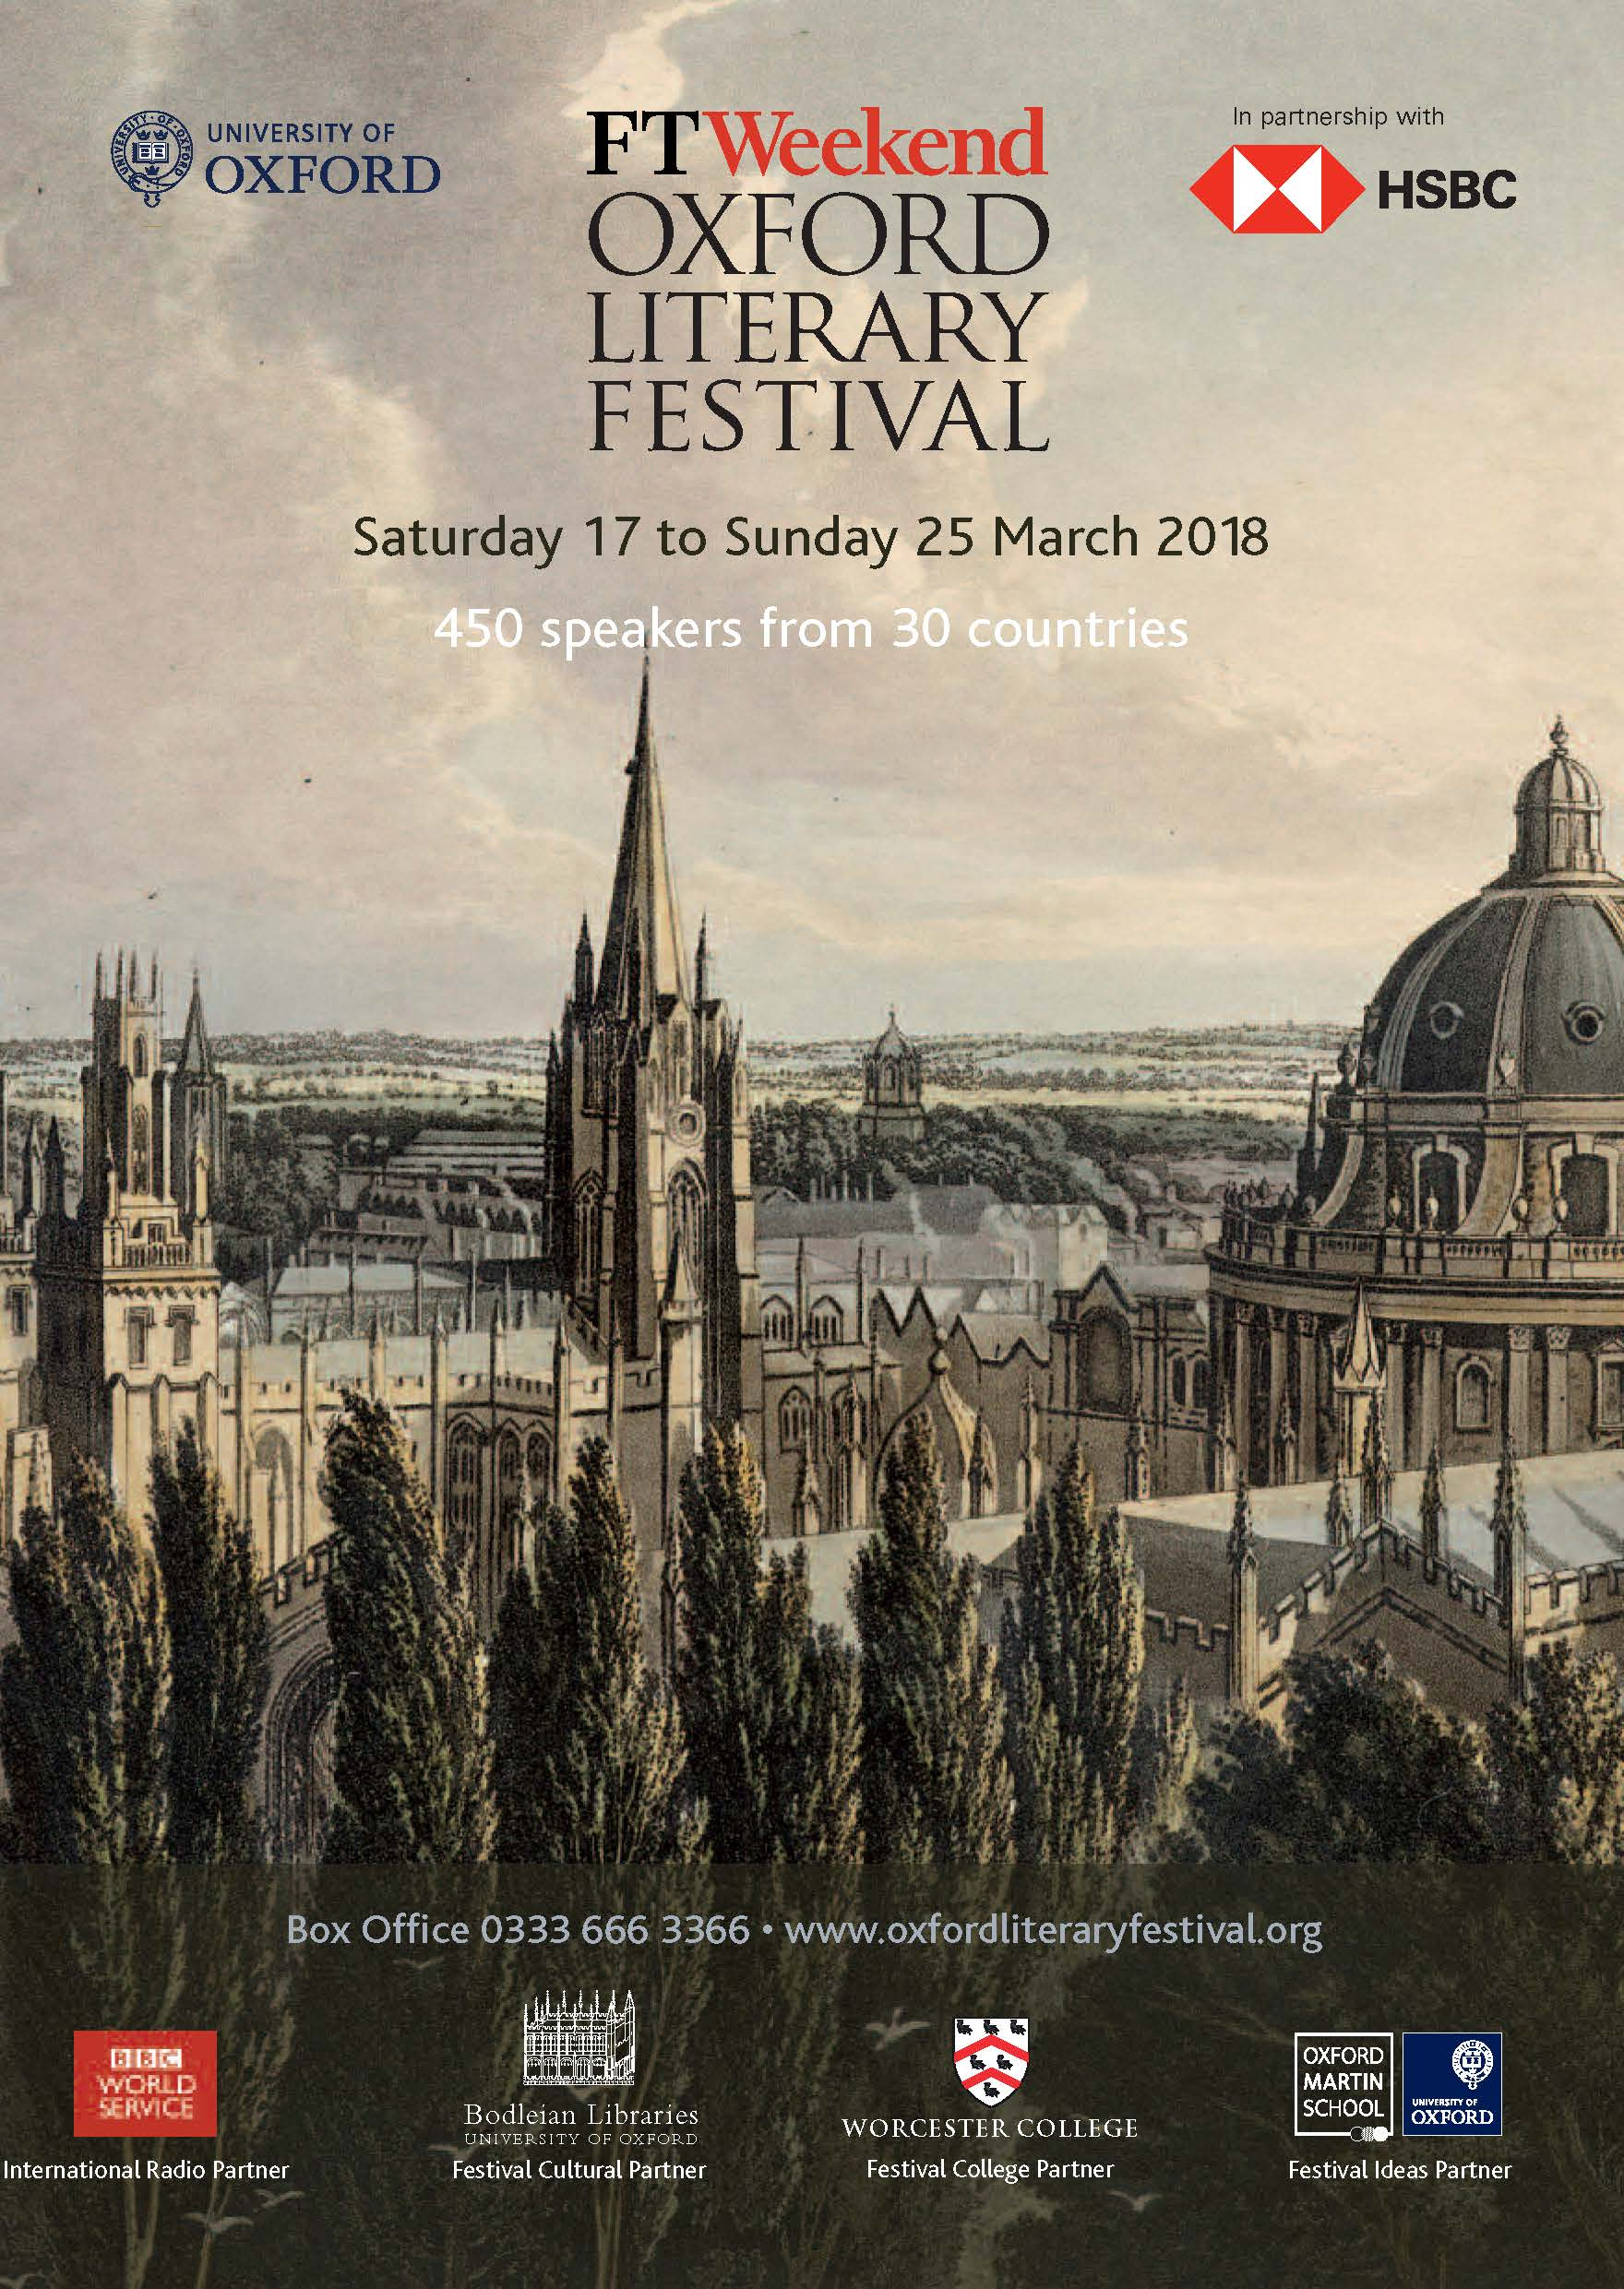 Oxford Literary Festival brochure 2018